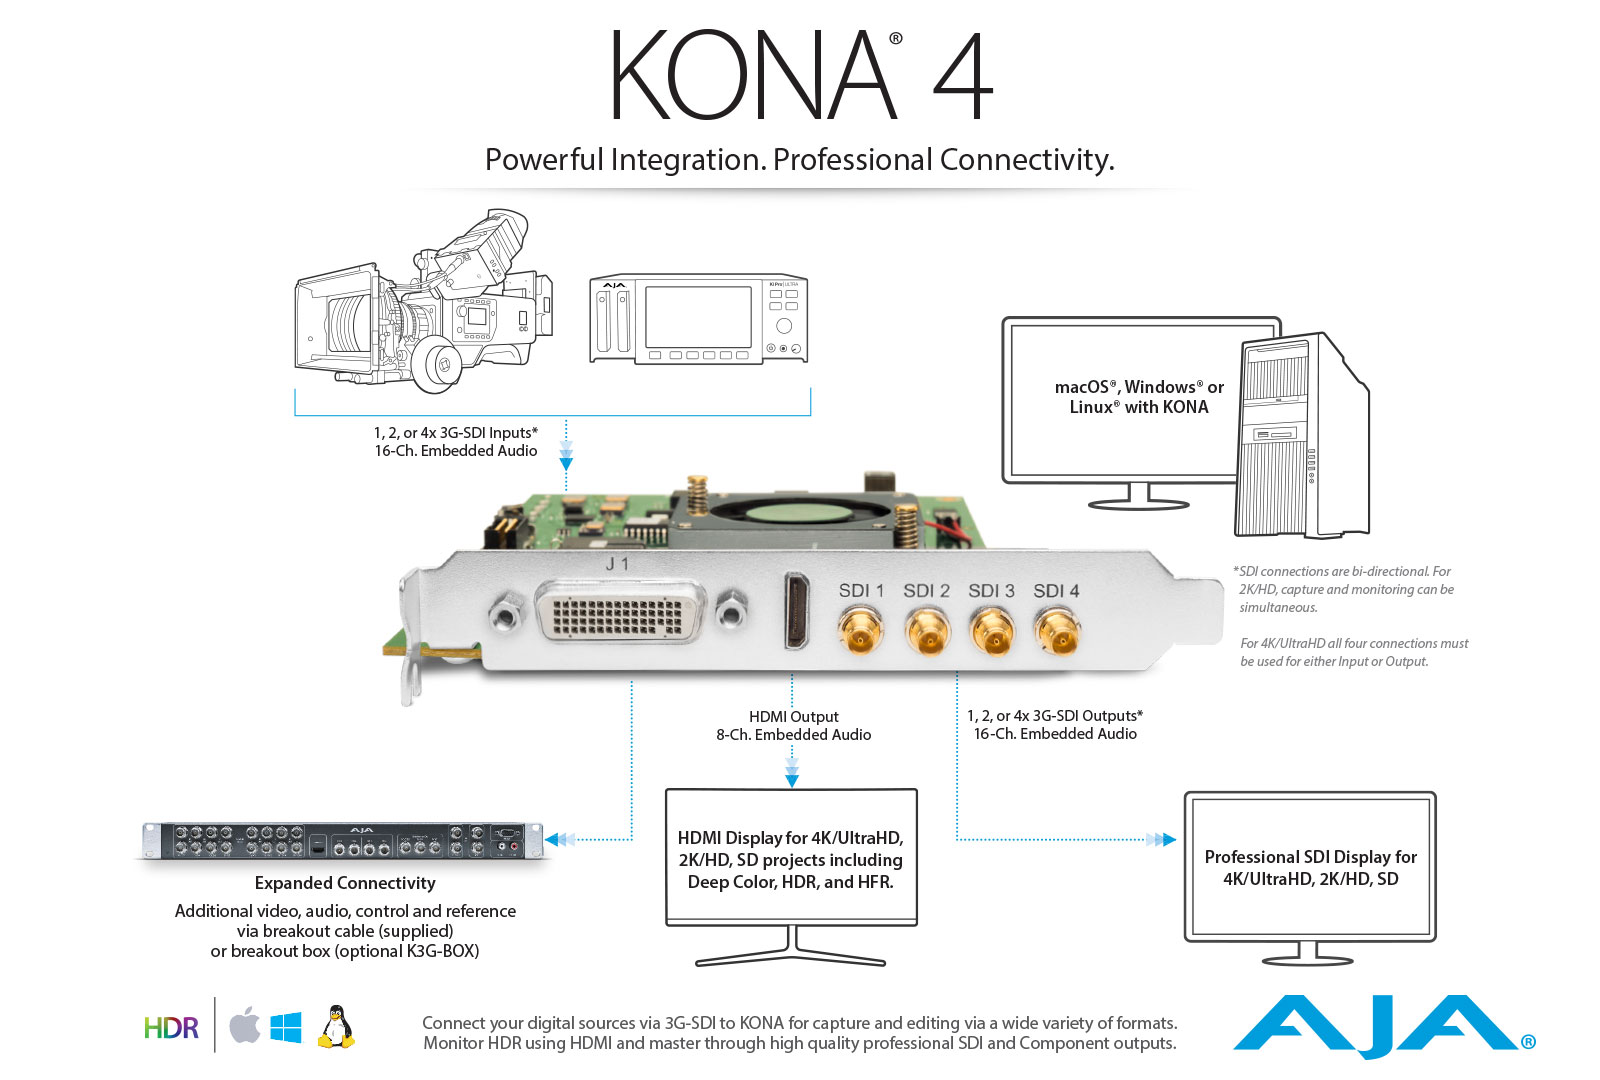 Kona 4 Powerful Integration Professional Connectivity Genlock Wiring Diagram Workflow